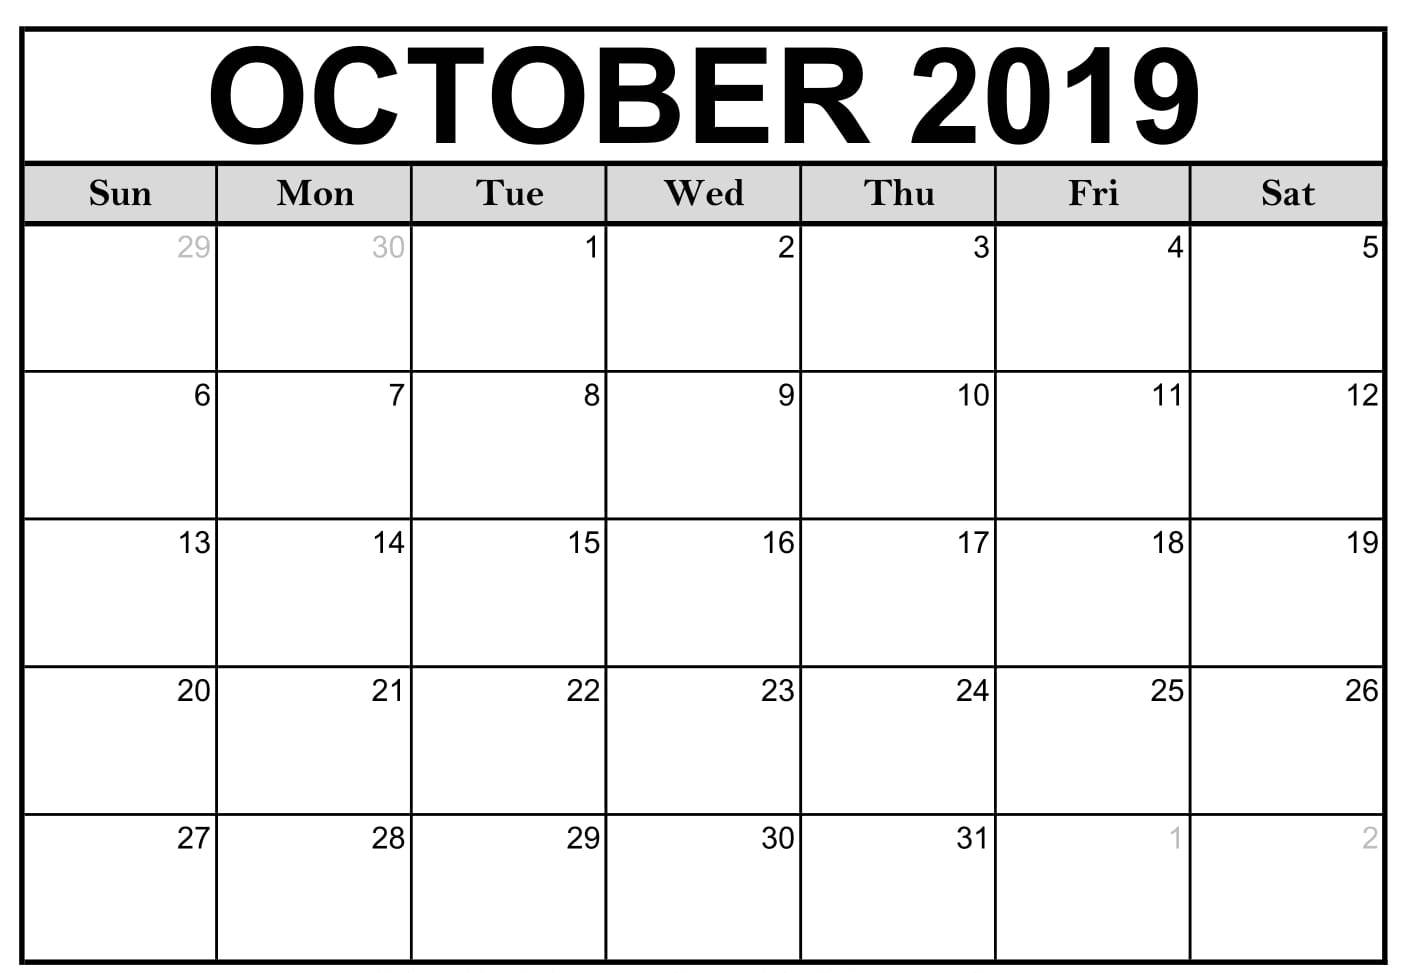 Fillable Calendar For October 2019 PDF